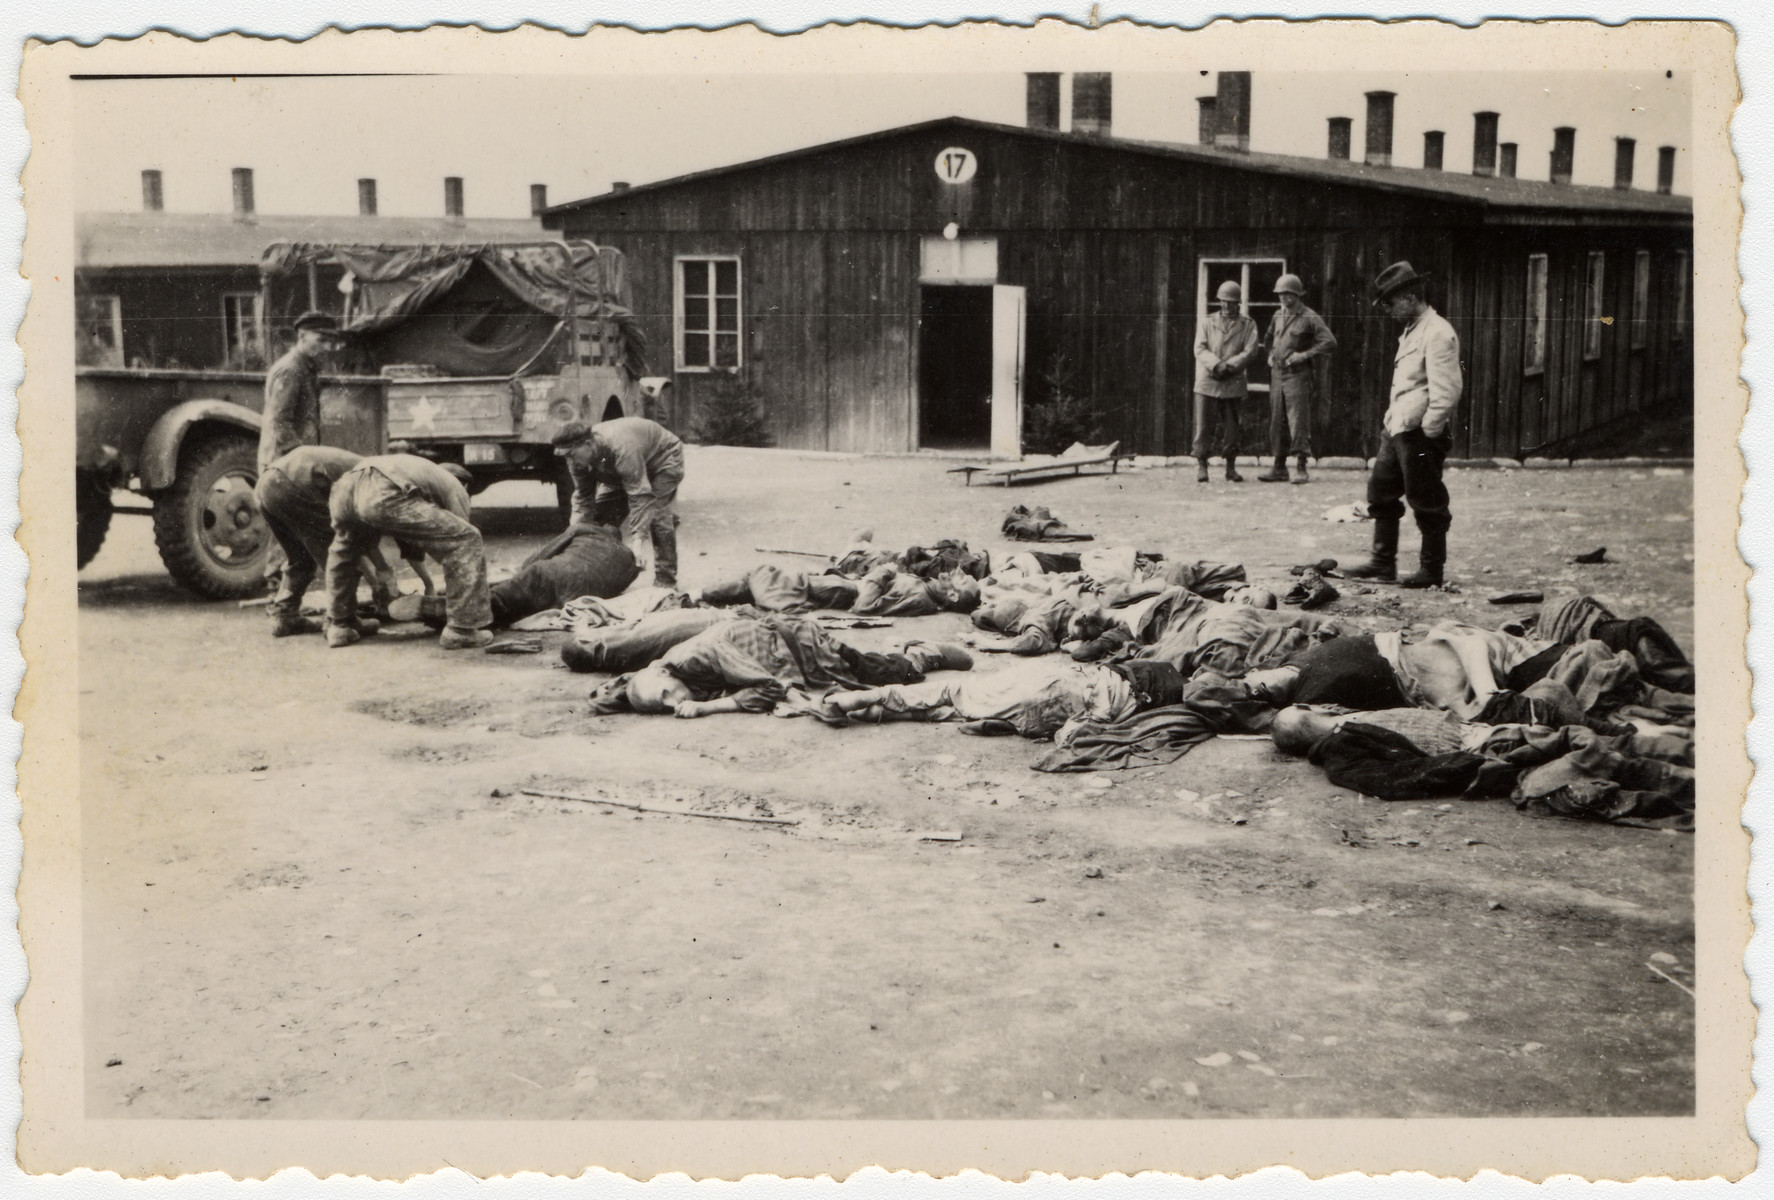 Survivors of Buchenwald clear corpses from the road in front of Barracks #17, as some American soldiers look on.